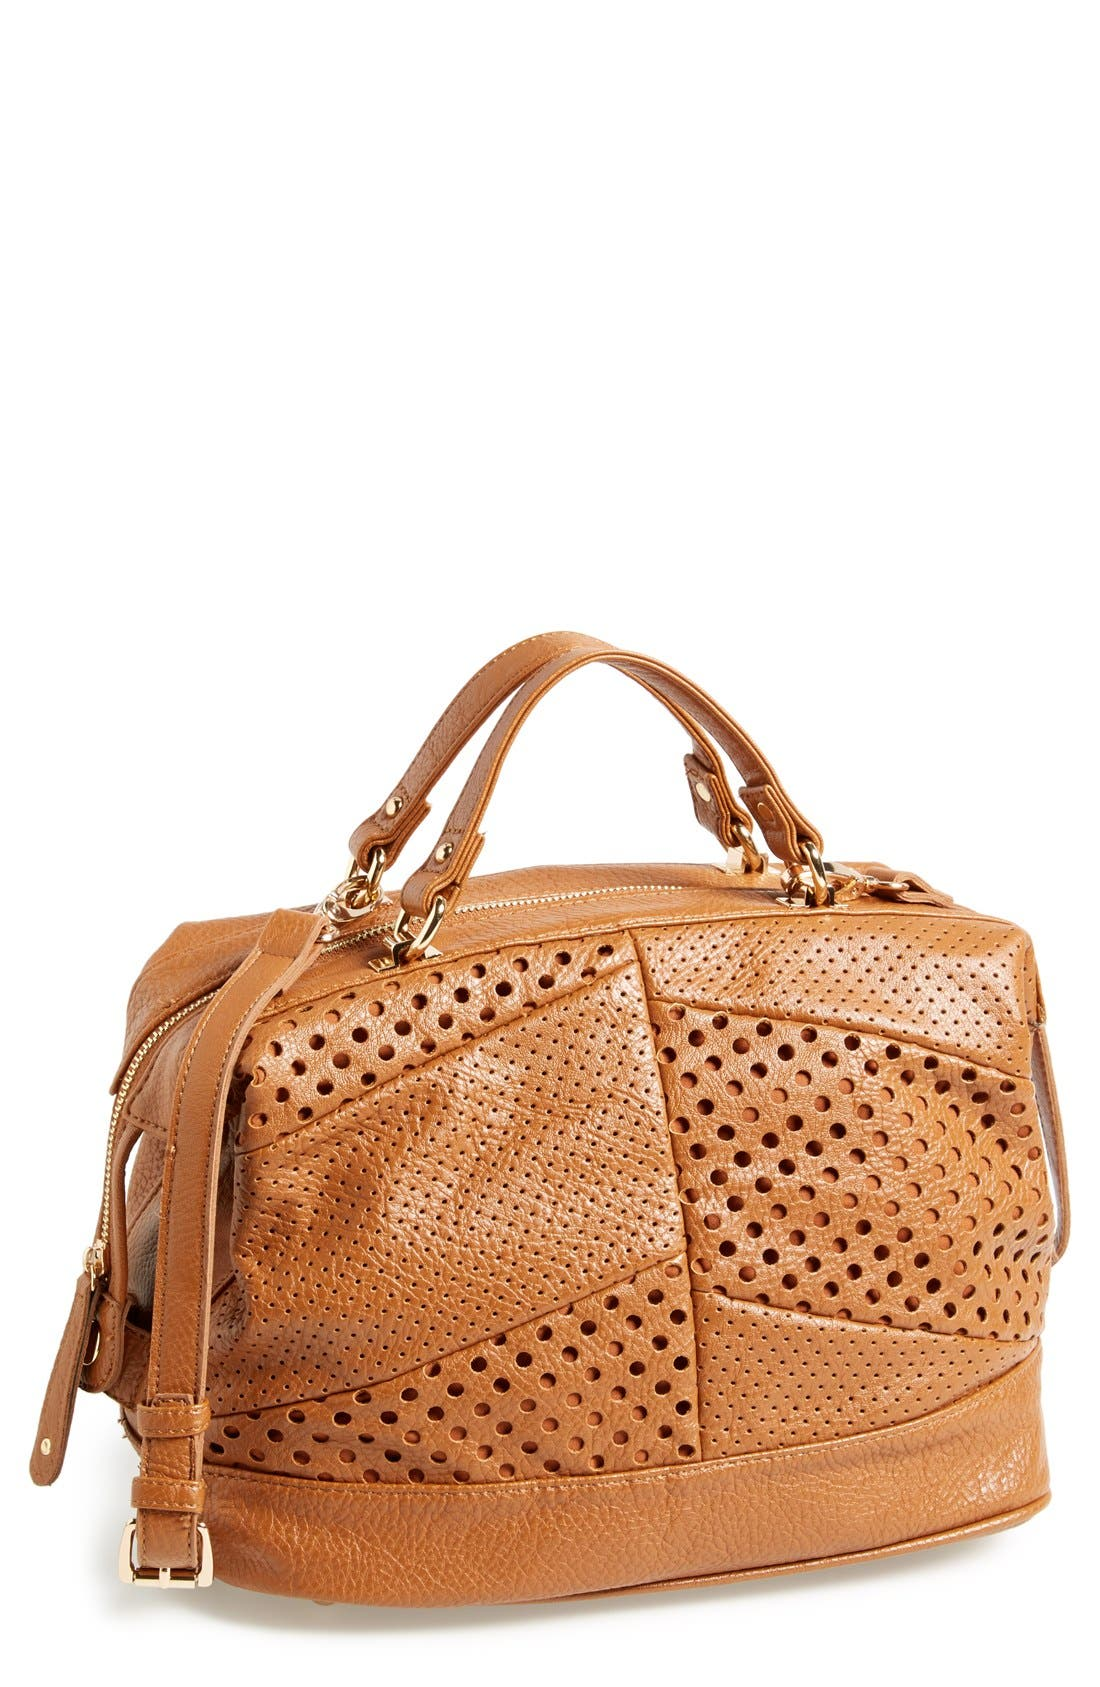 Alternate Image 1 Selected - Sole Society 'Patchwork' Perforated Faux Leather Satchel